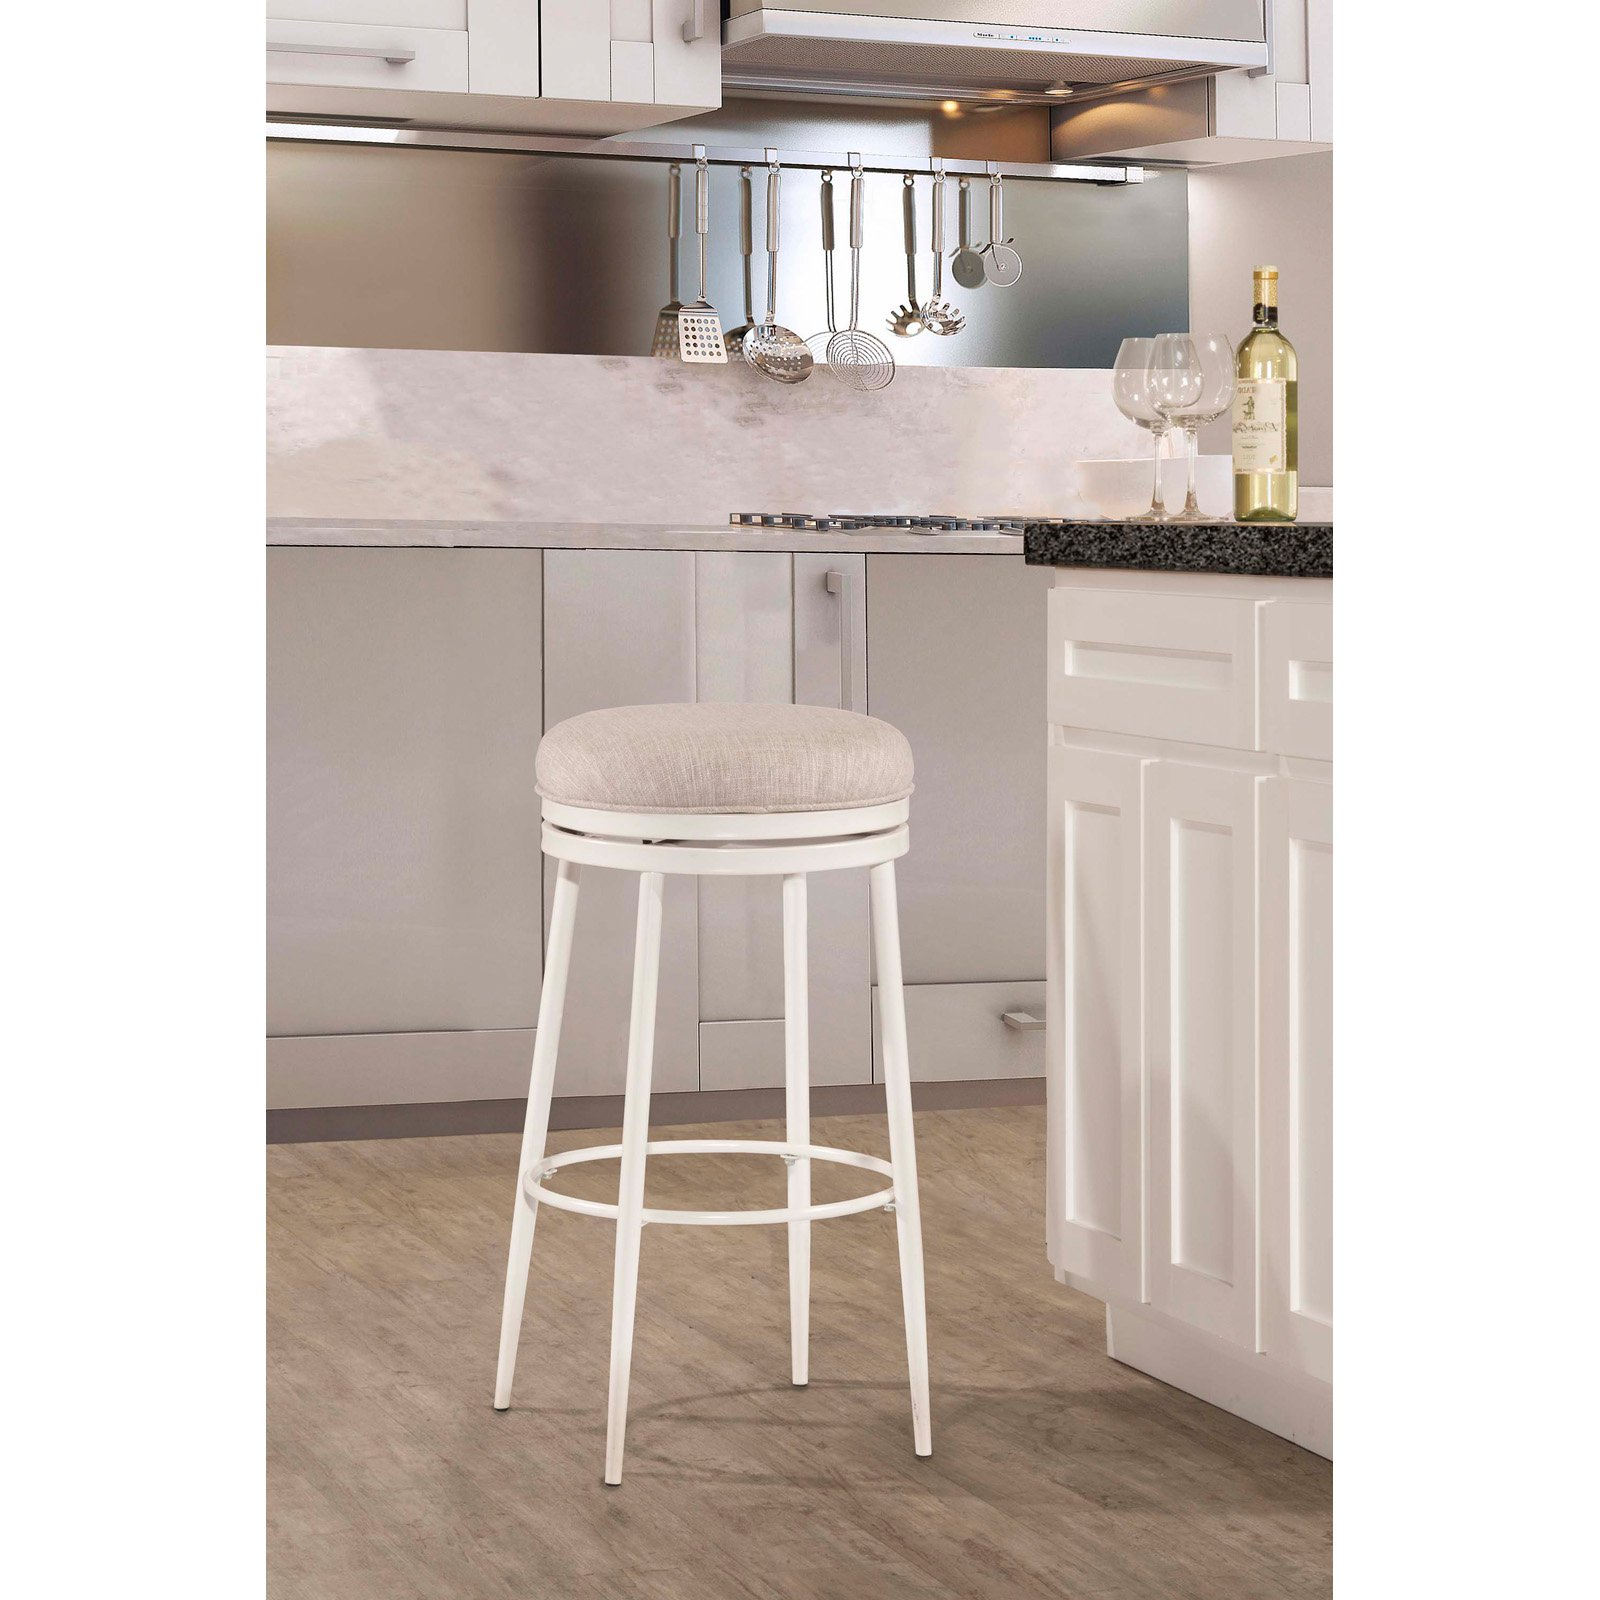 Hillsdale Furniture Aubrie Swivel Backless Counter Stool by Hillsdale Furniture